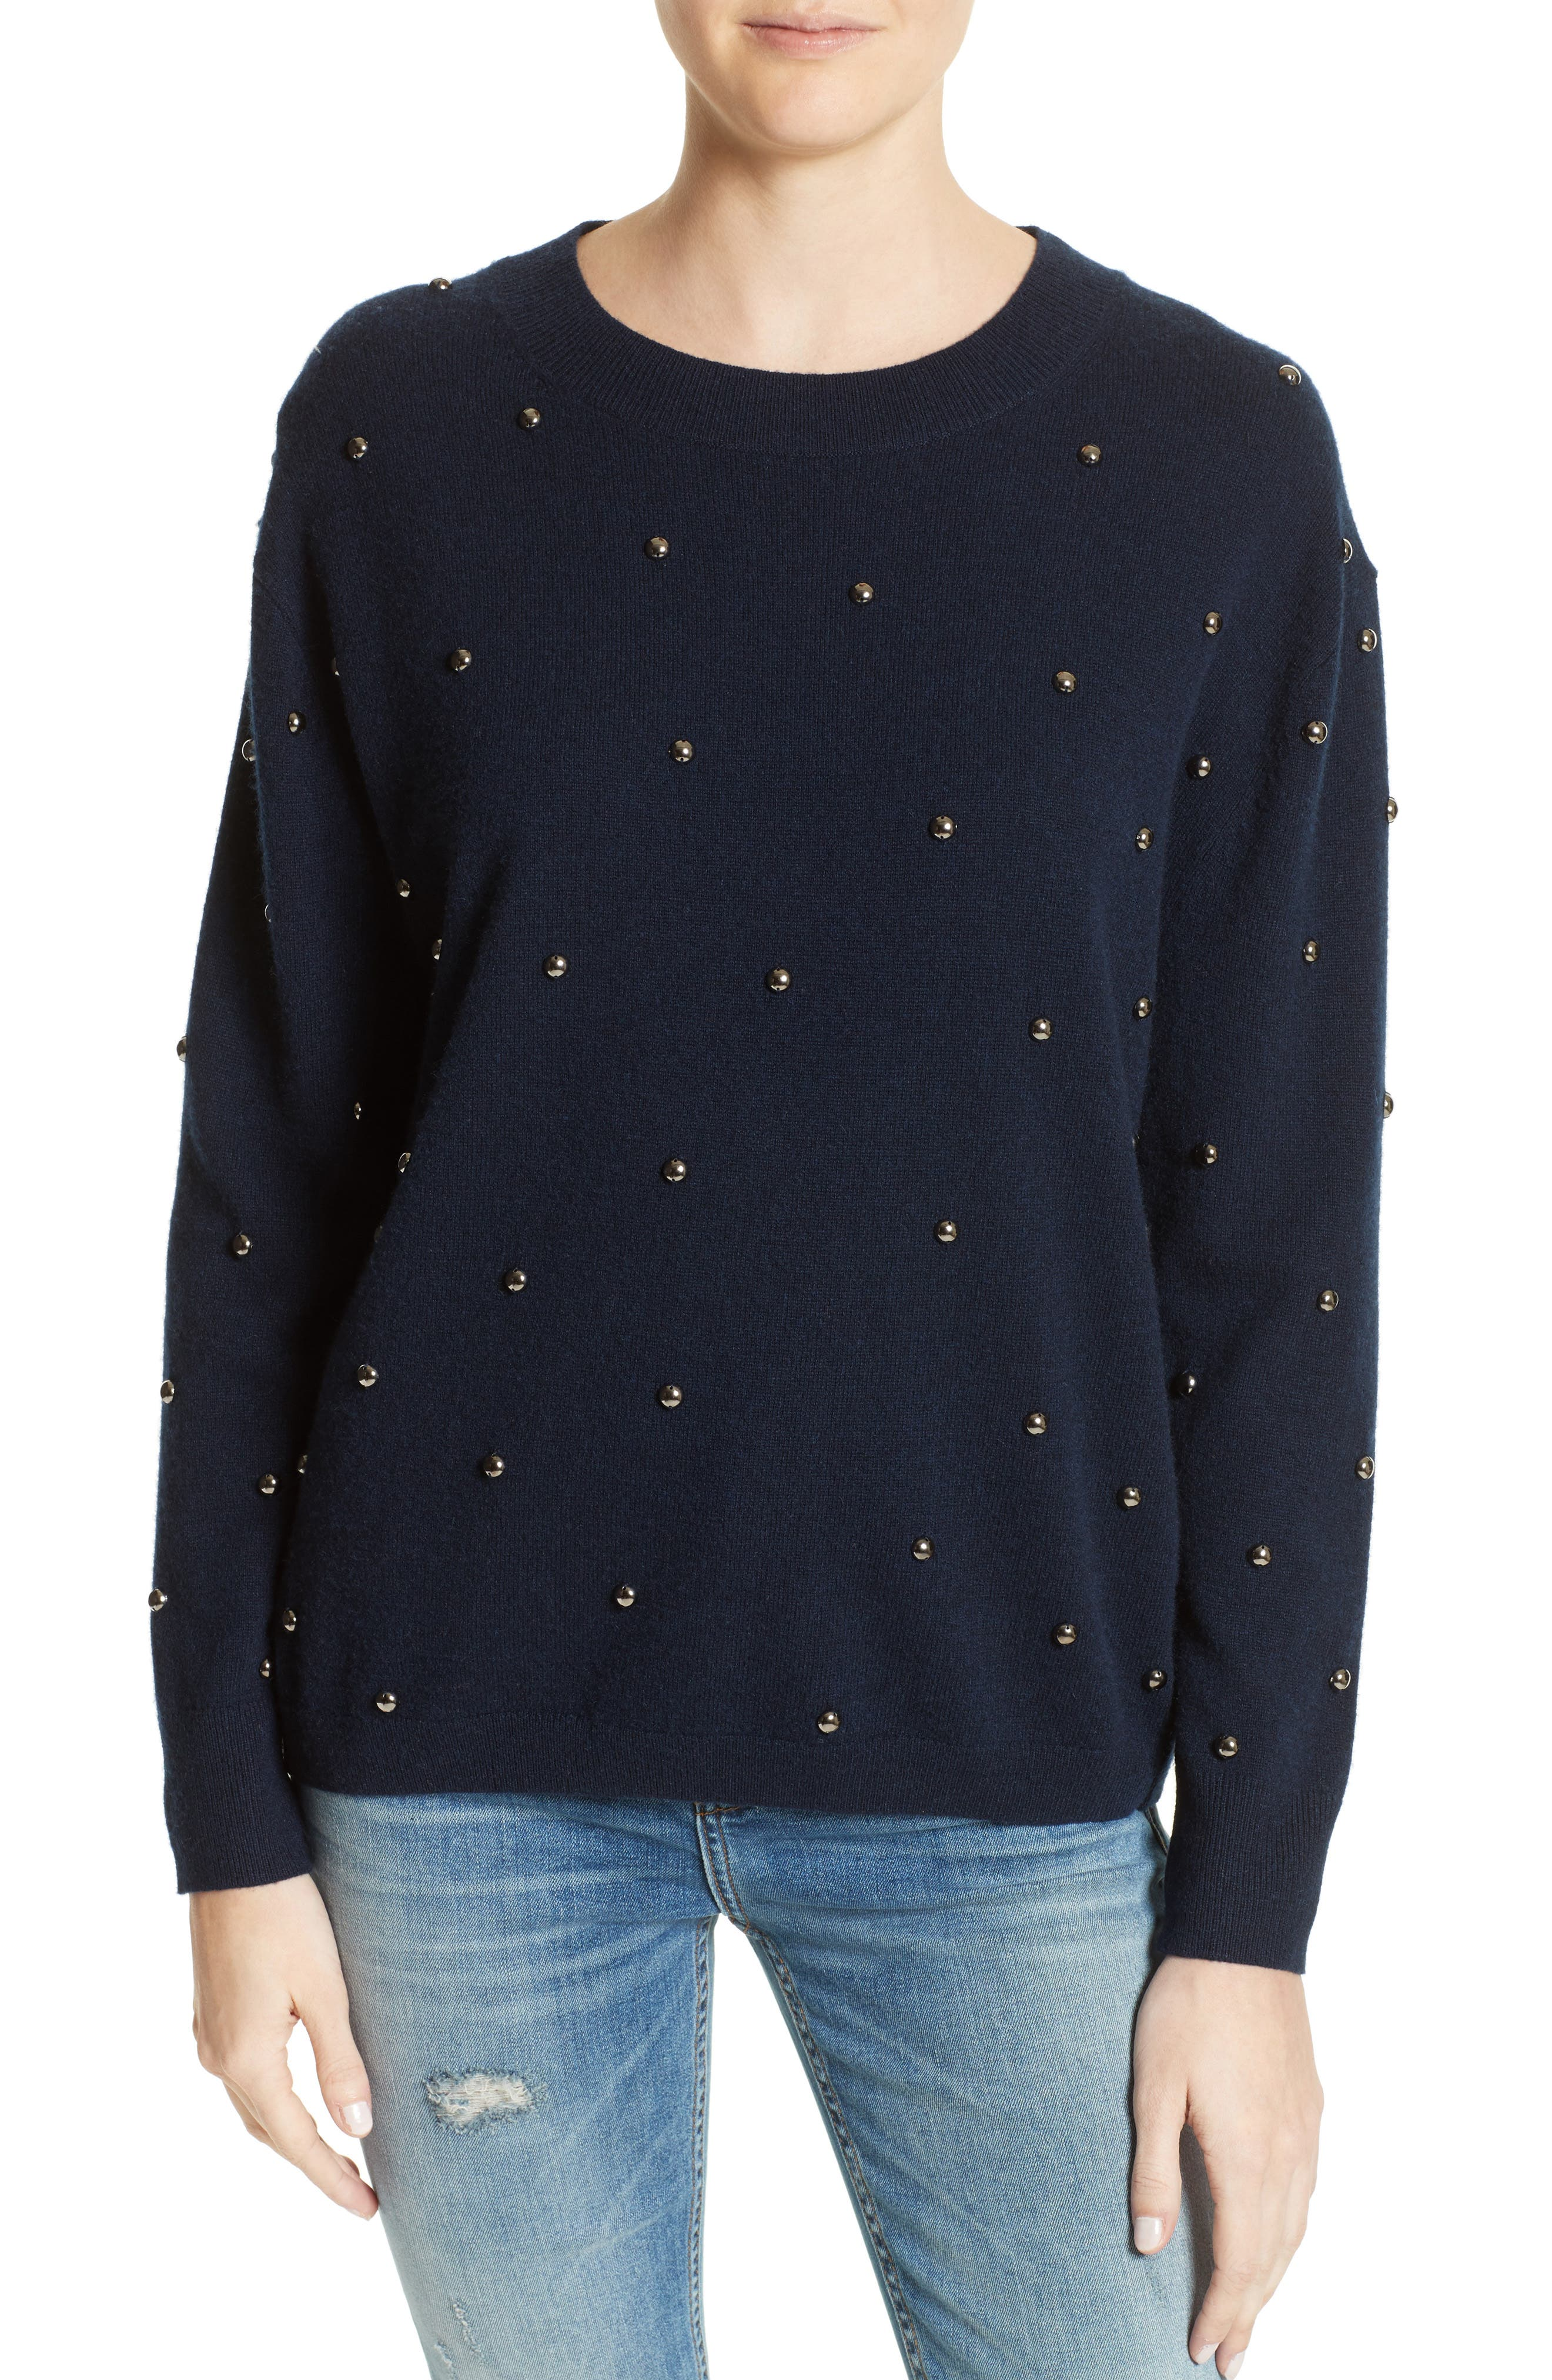 Alternate Image 1 Selected - The Kooples Embellished Wool & Cashmere Sweater